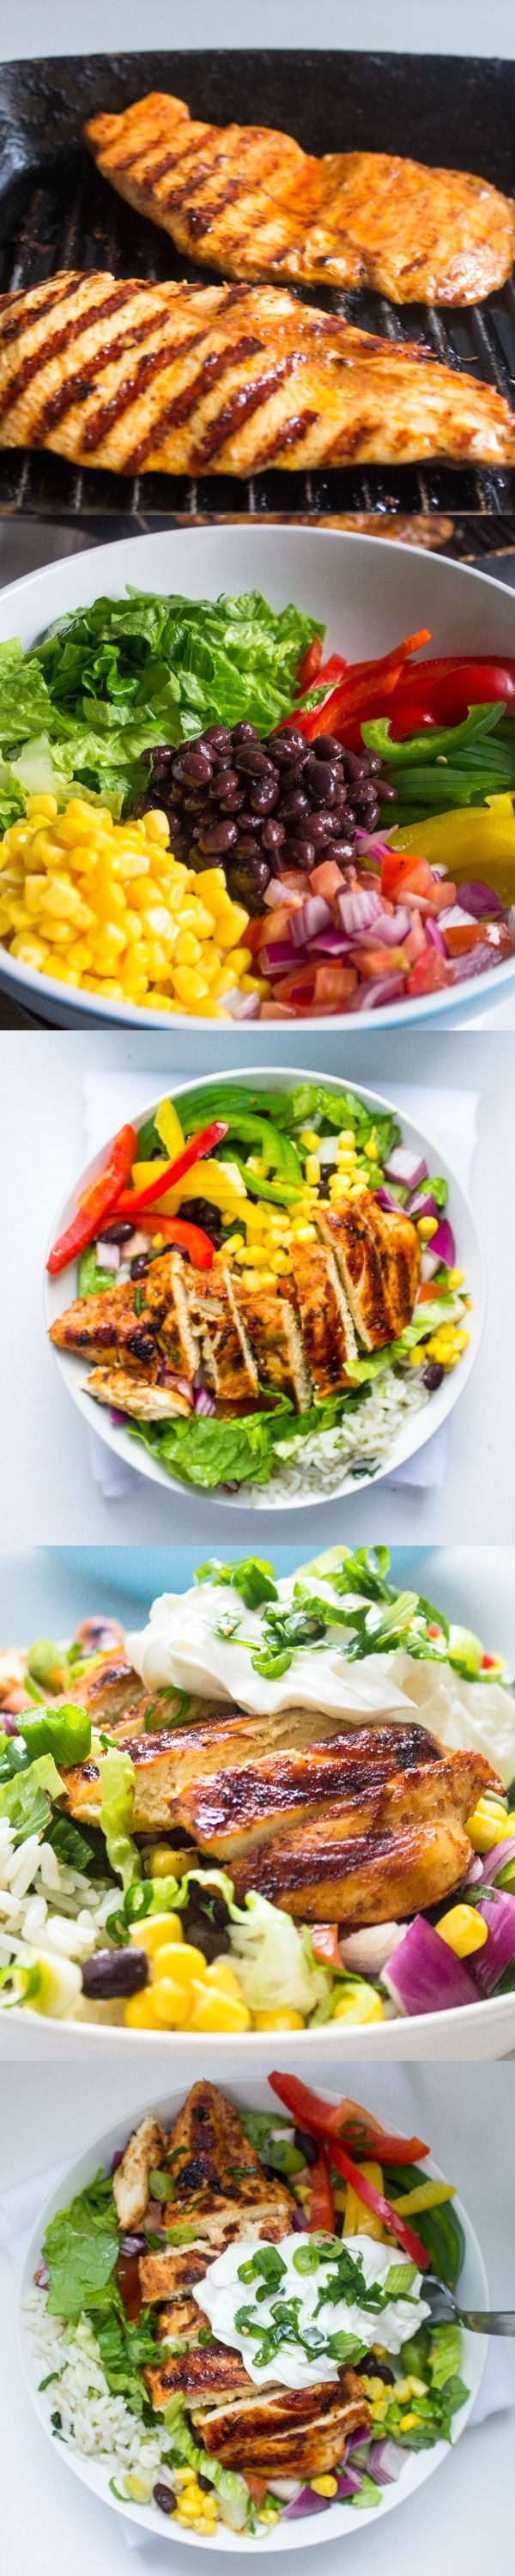 Gotta Try this Chipotle's Chicken Burrito Bowl with Cilantro Lime Rice Recipe!!